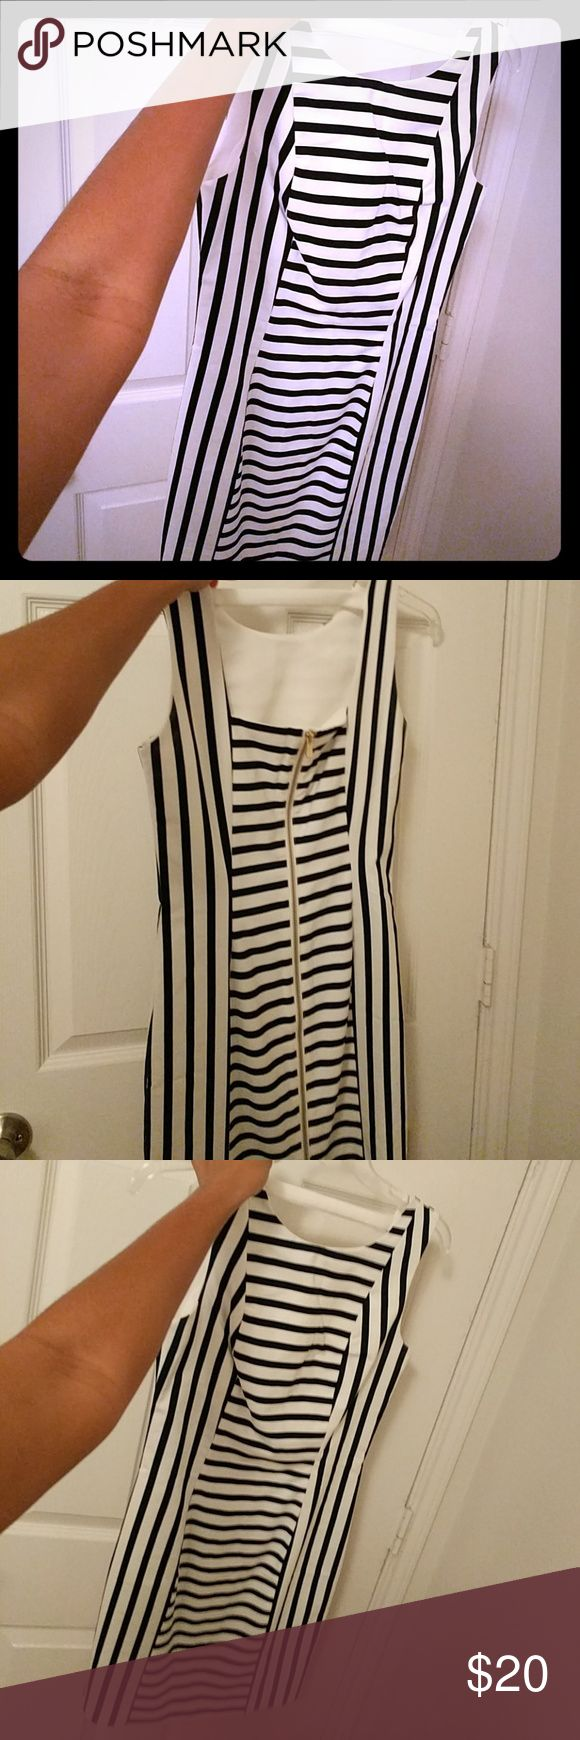 Navy blue and white cocktail dress Gold zip-up in the back. Great for parties and formal events. Best paired with a blazer. Worn once. H&M Dresses Midi